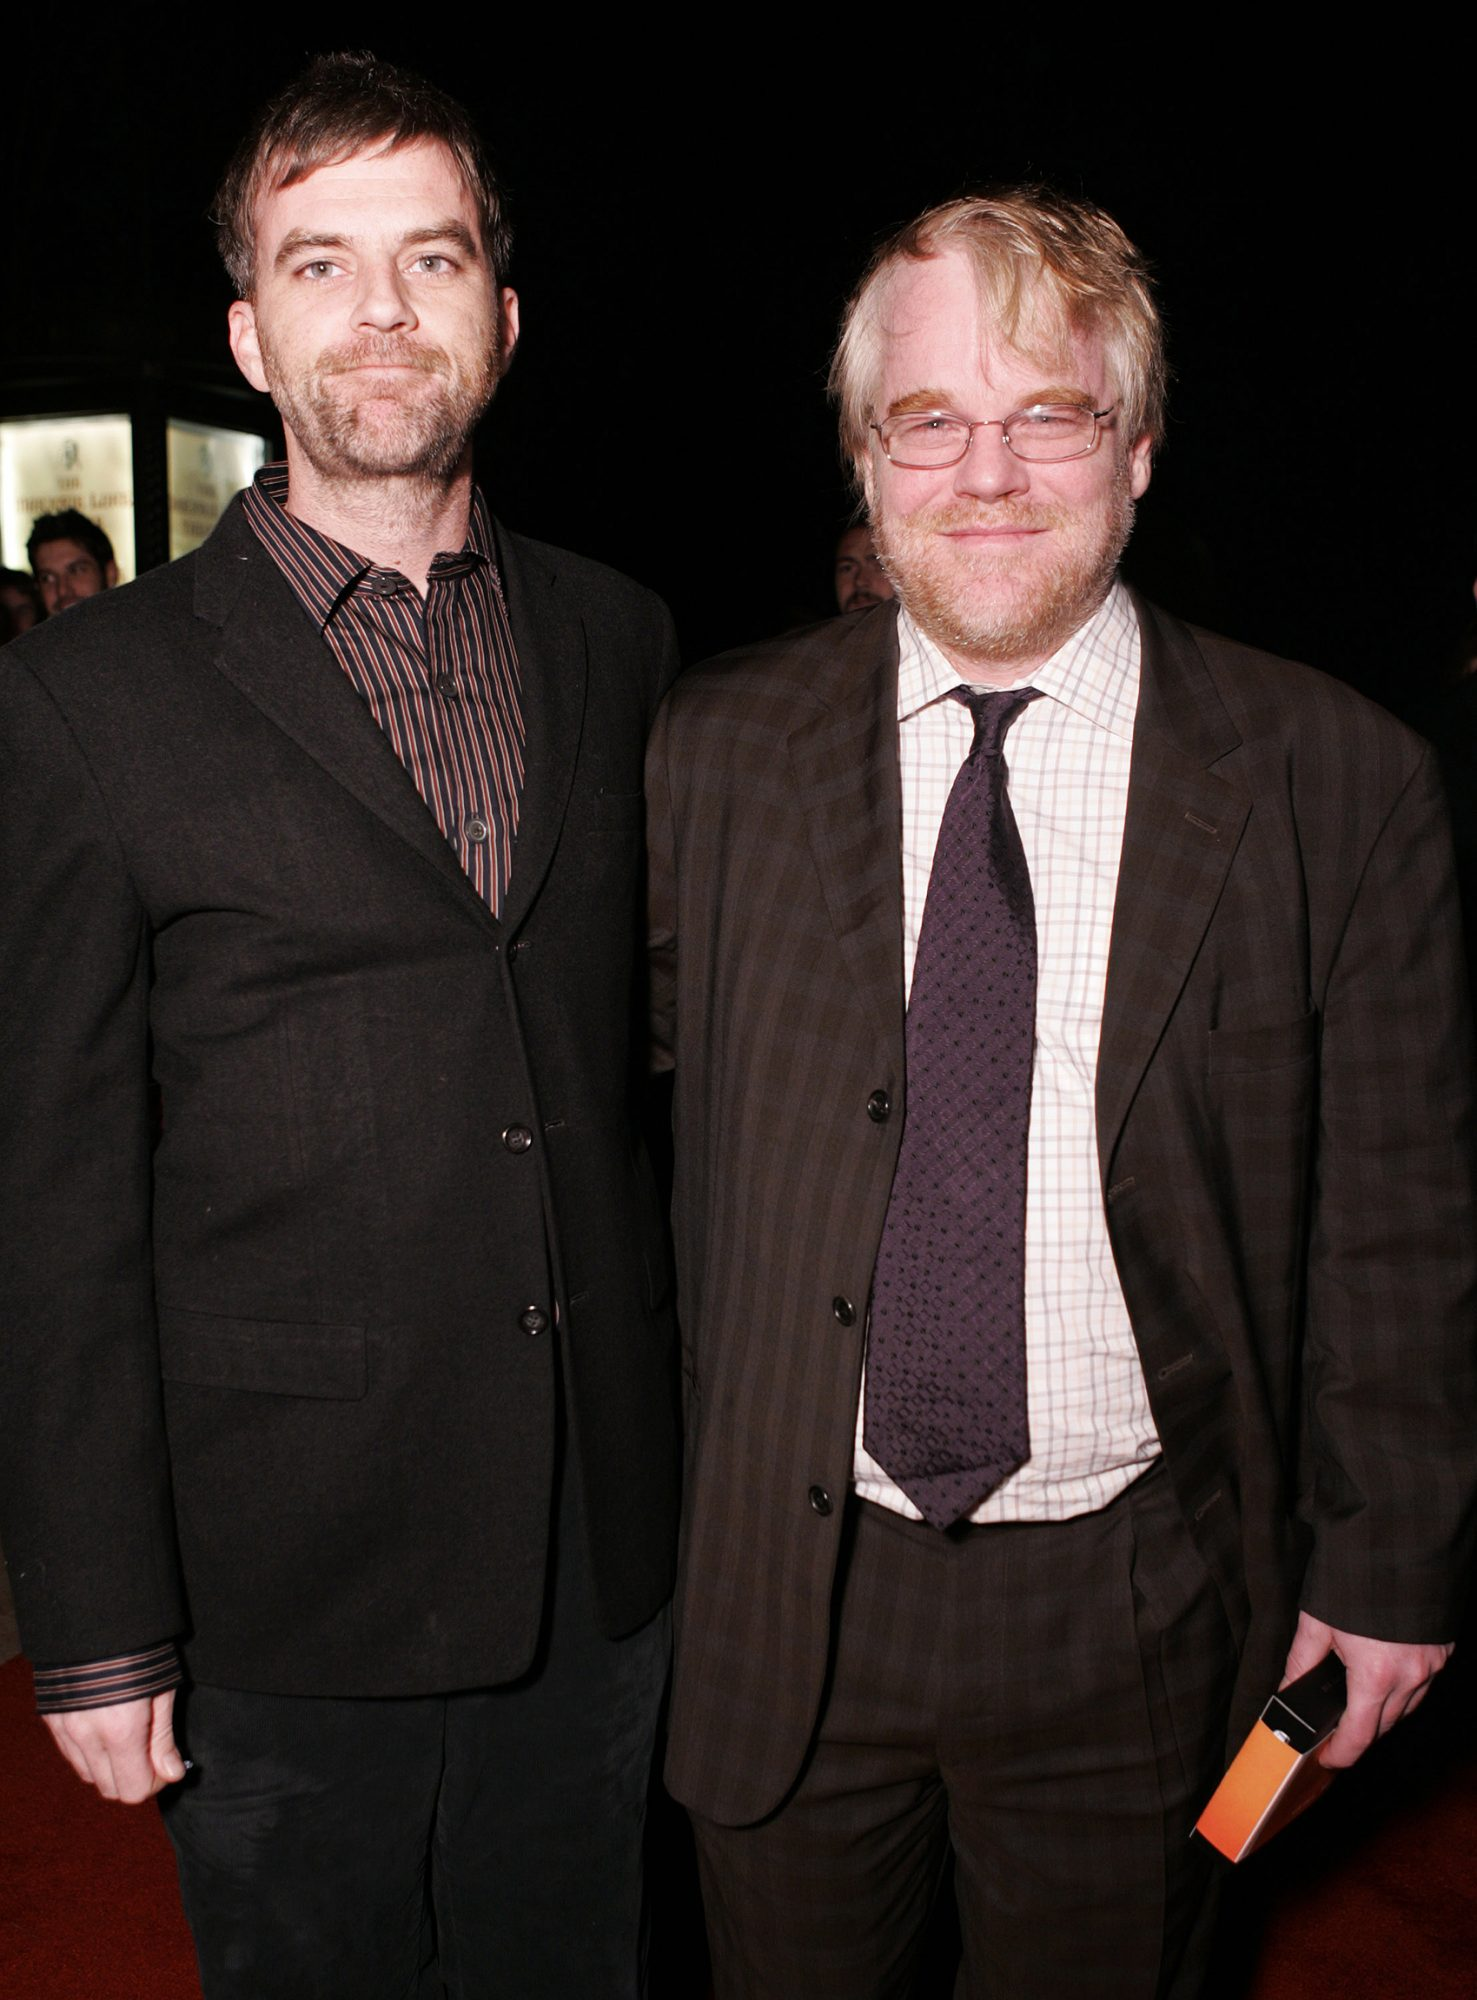 Paul Thomas Anderson and Philip Seymour Hoffman during 21st Annual Santa Barbara International Film Festival - The Riviera Award Honoring Phillip Seymour Hoffman at Marjorie Luke in Santa Barbara, CA, United States. (Photo by Chris Weeks/WireImage)